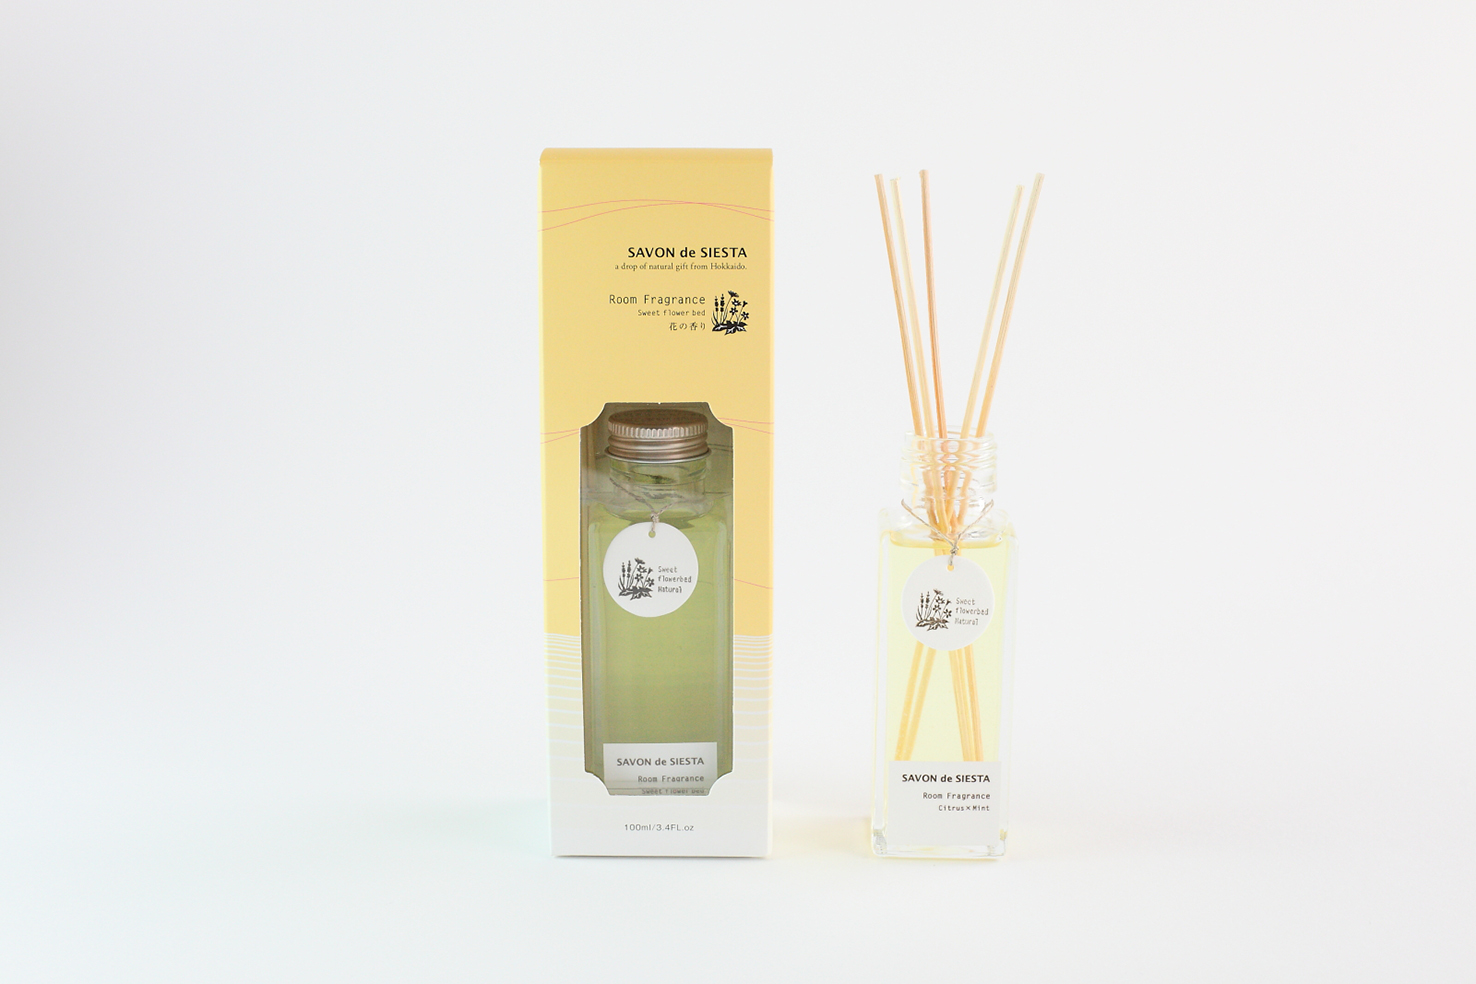 Room Fragrance 花の香り